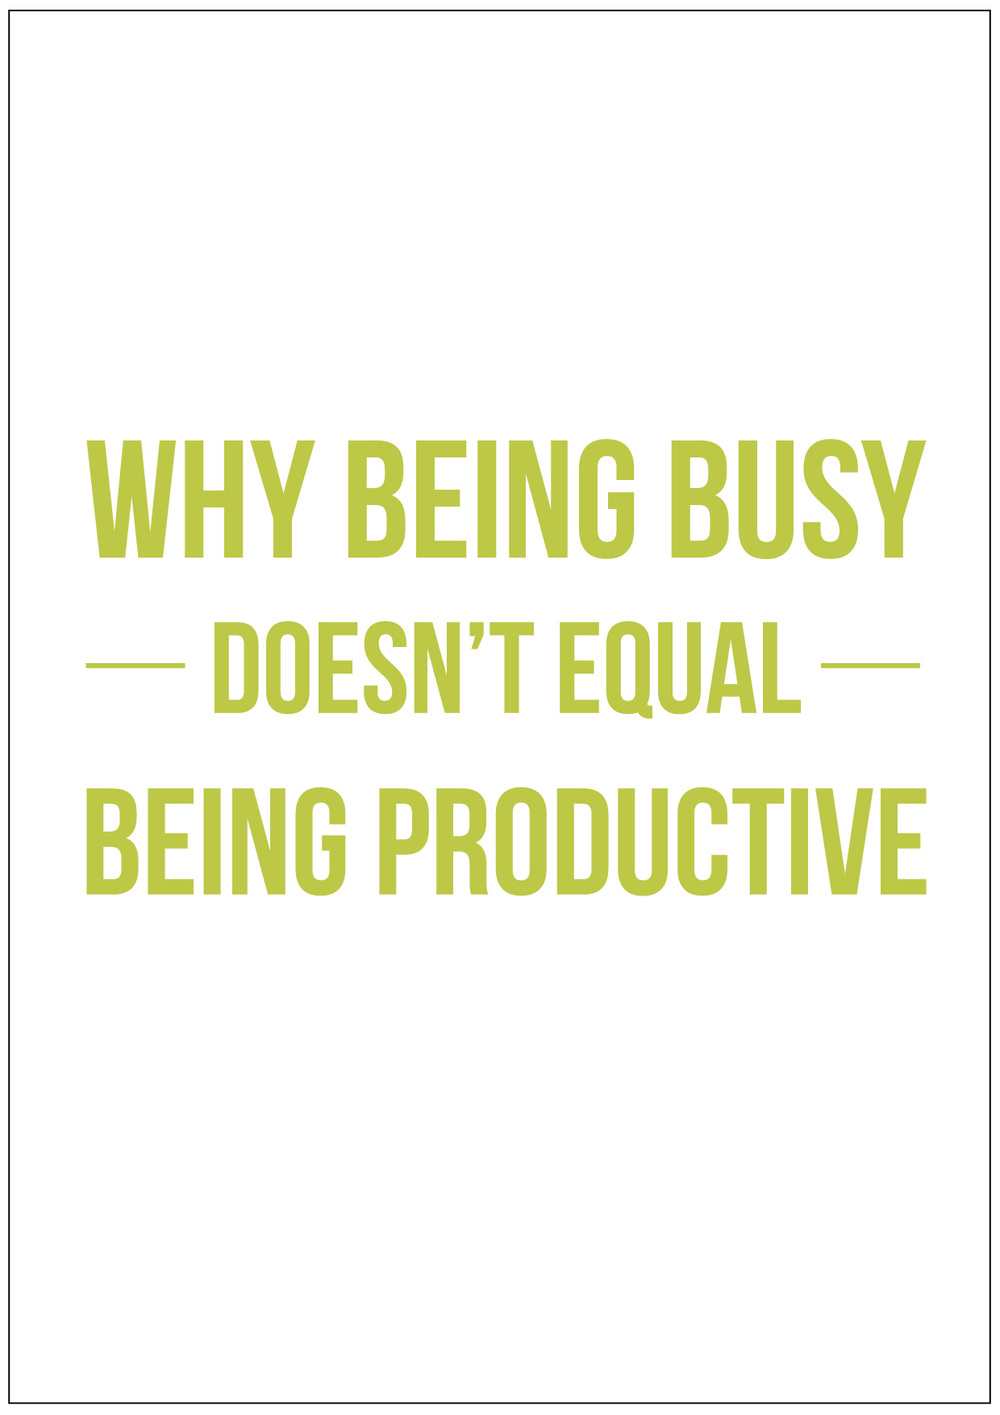 Why Being Busy Doesn't Equal Being Productive